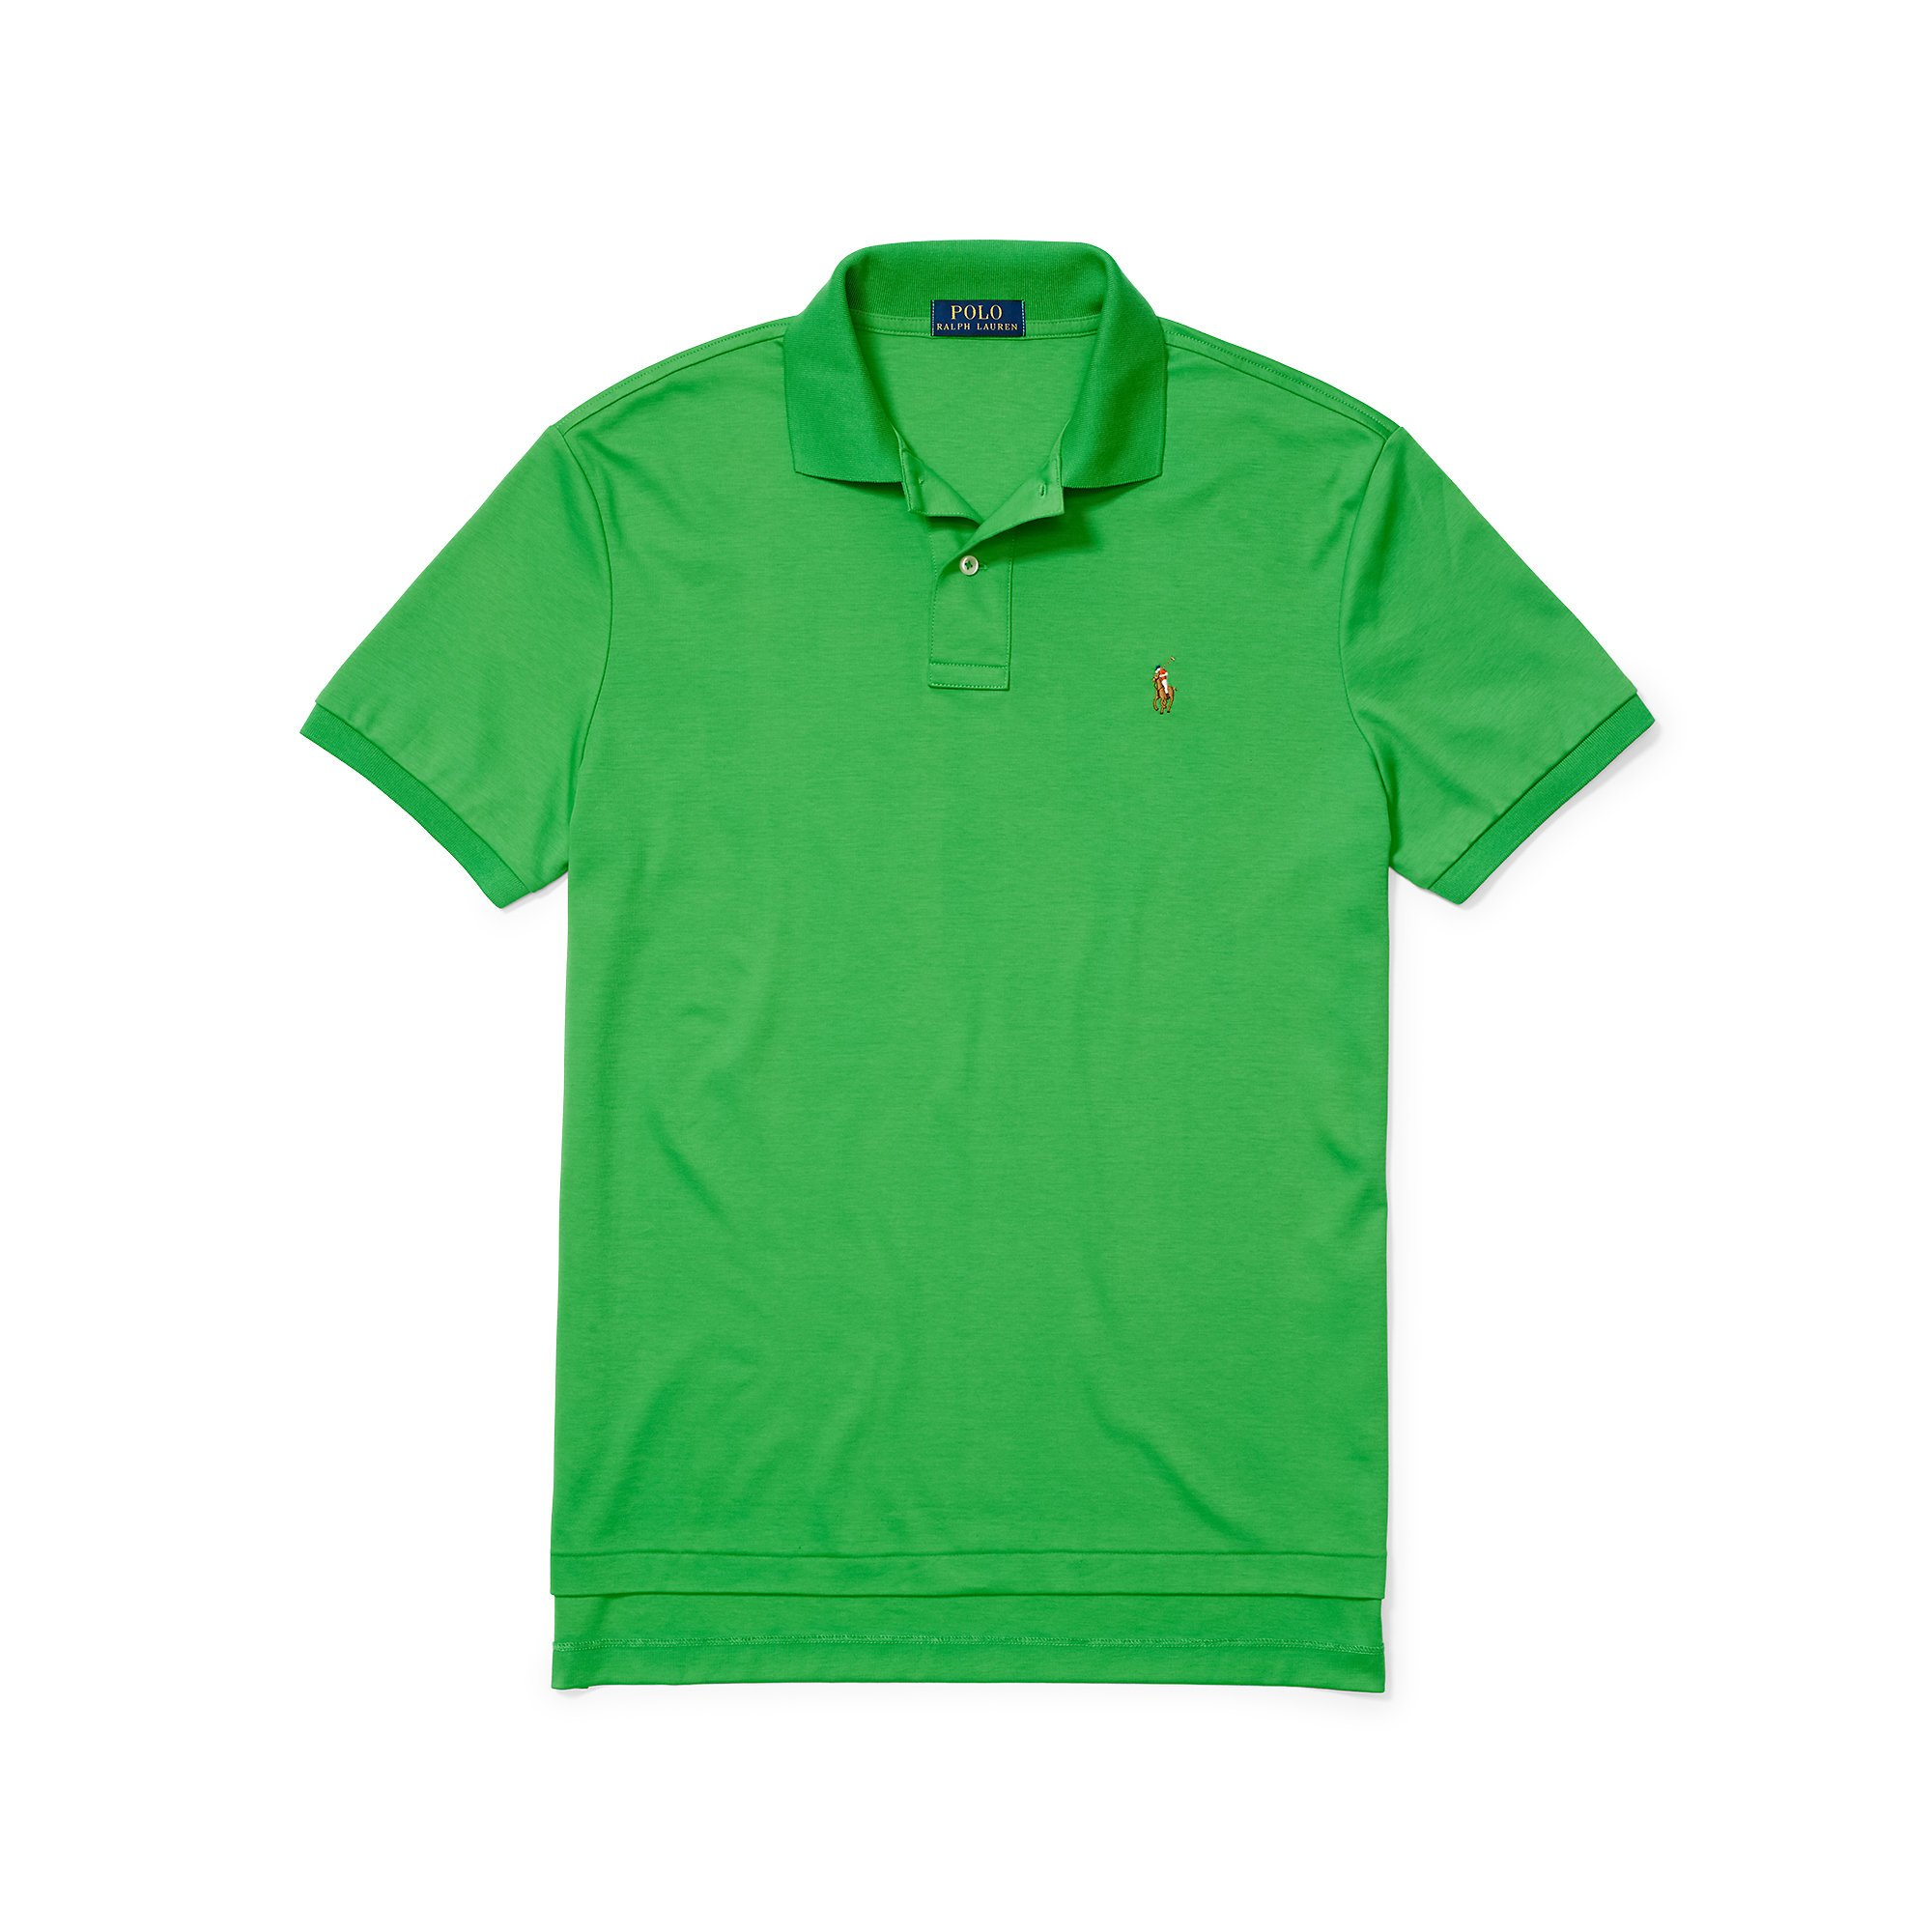 bc8fefc4c Polo Ralph Lauren Pima Soft-touch Polo Shirt in Green for Men - Lyst